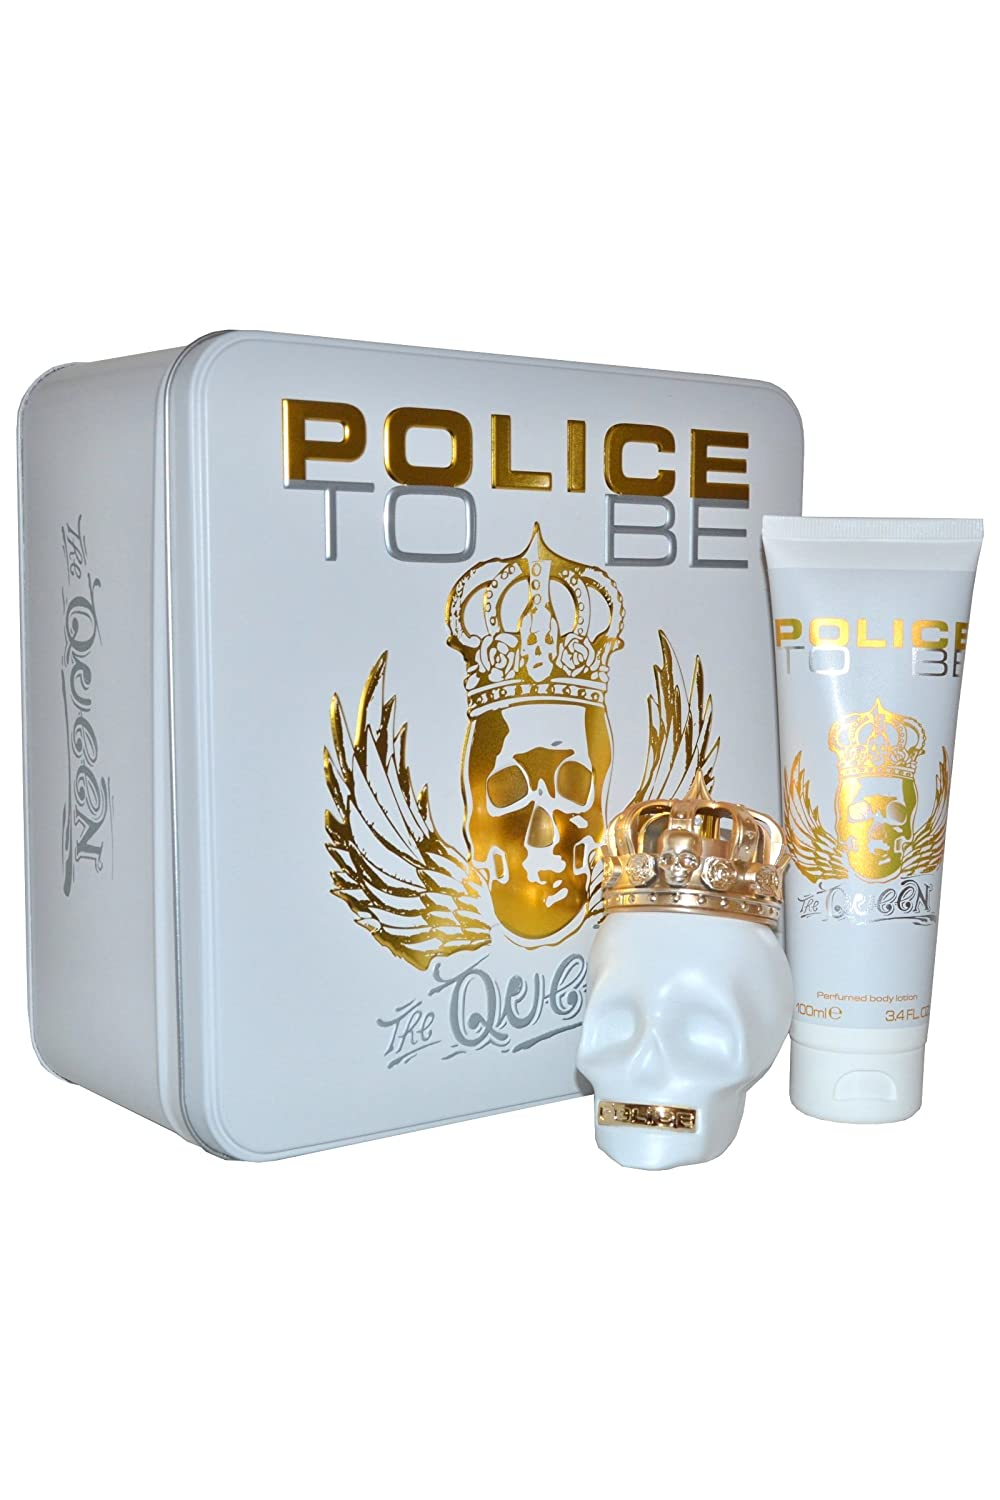 To Be The Queen by Police Eau de Parfum 75ml & Body Lotion 100ml